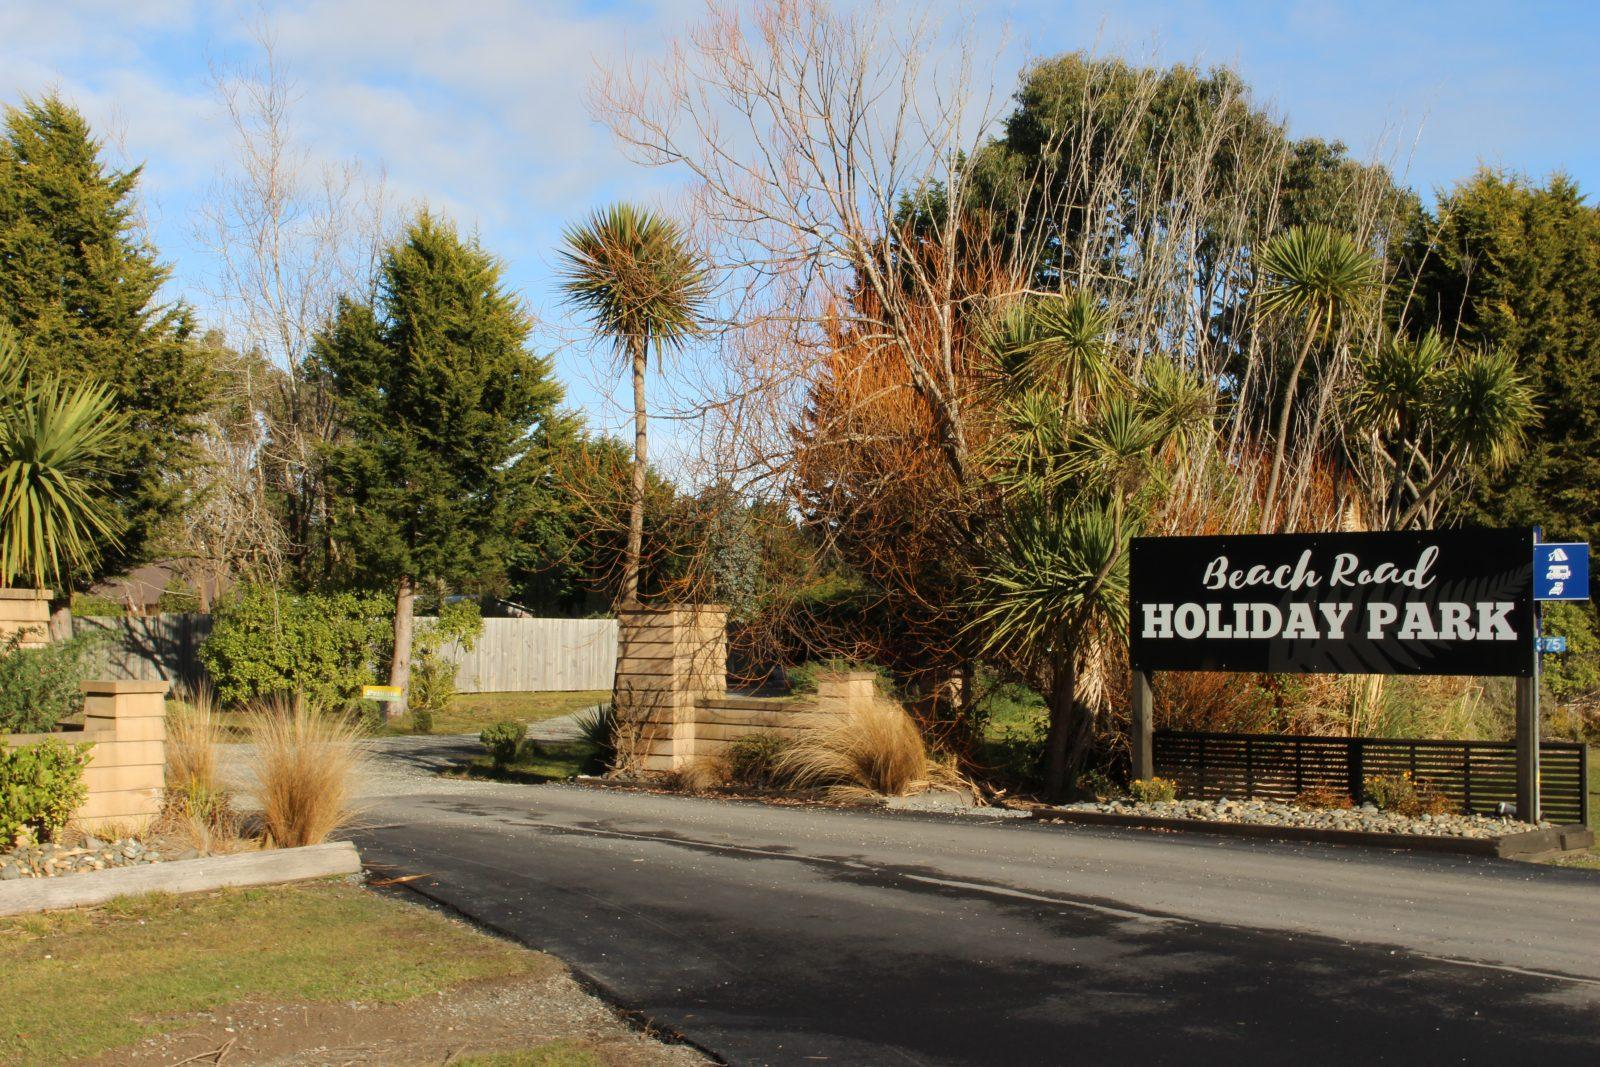 Beach Road Holiday Park